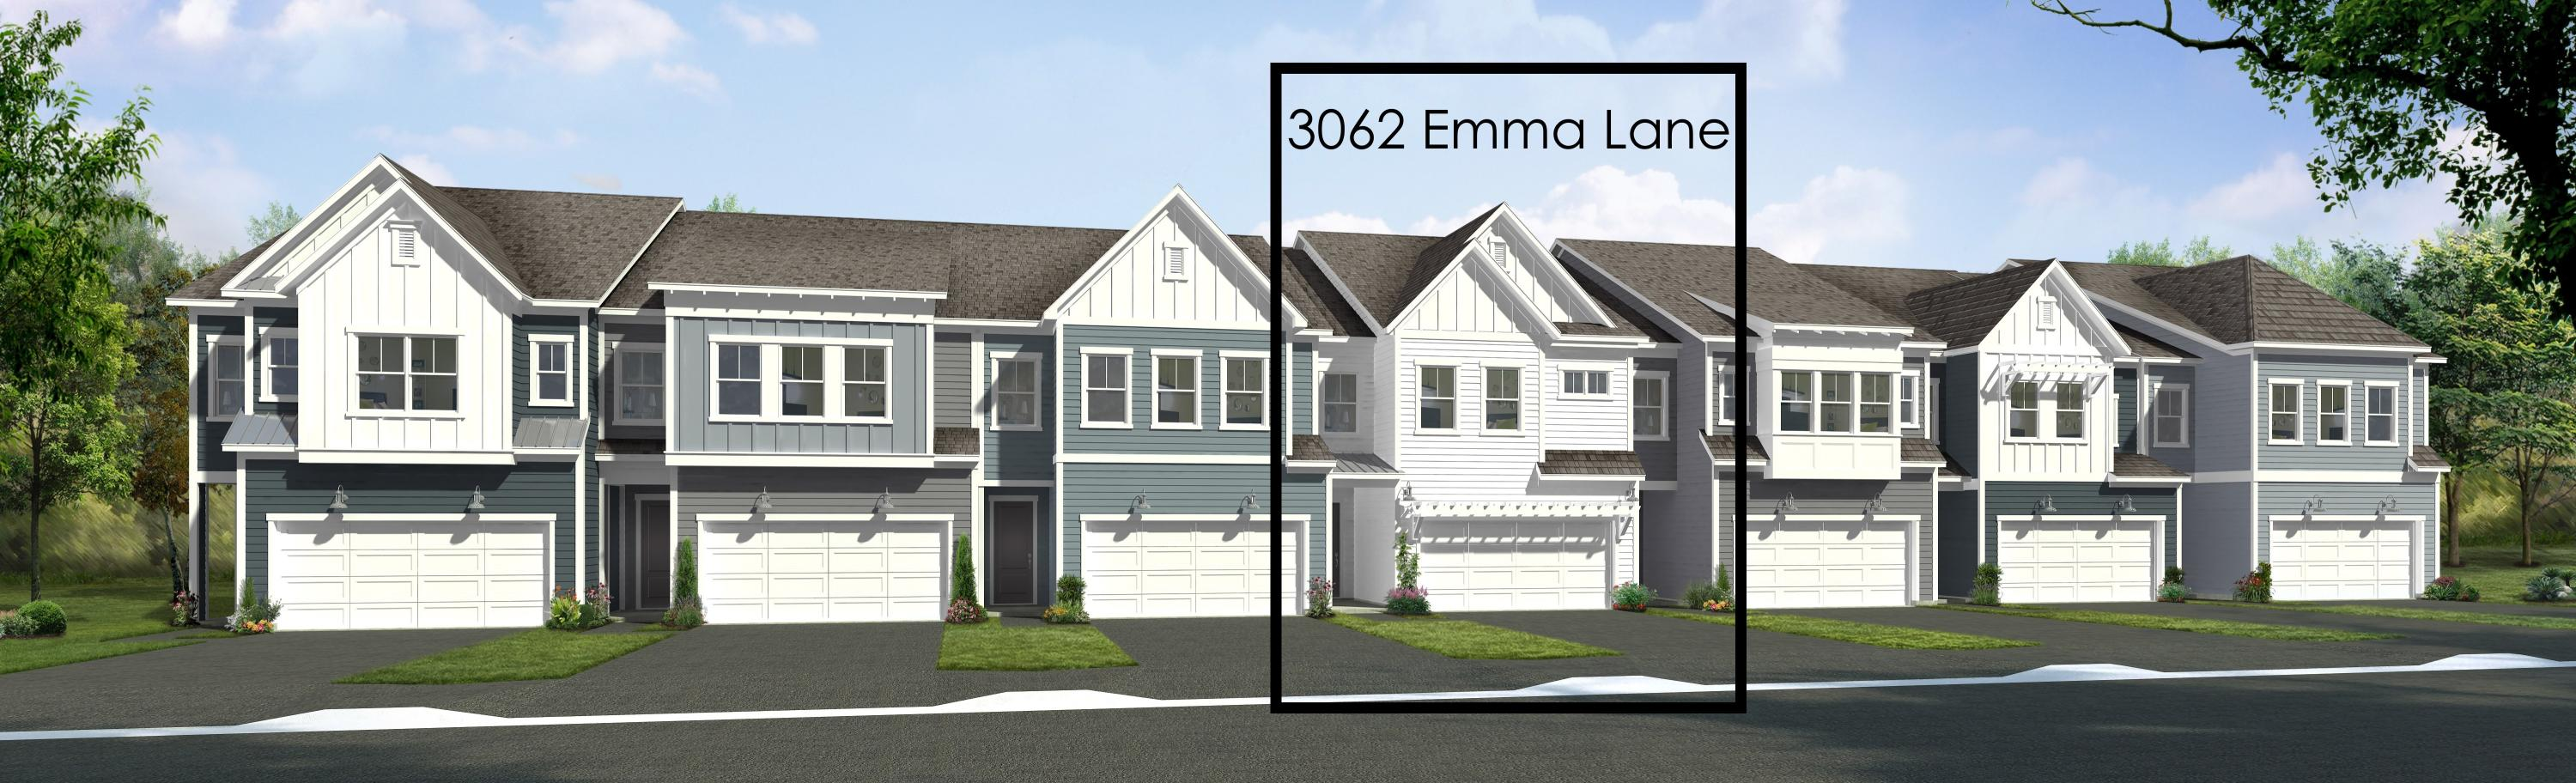 3062 Emma Lane Mount Pleasant, SC 29466